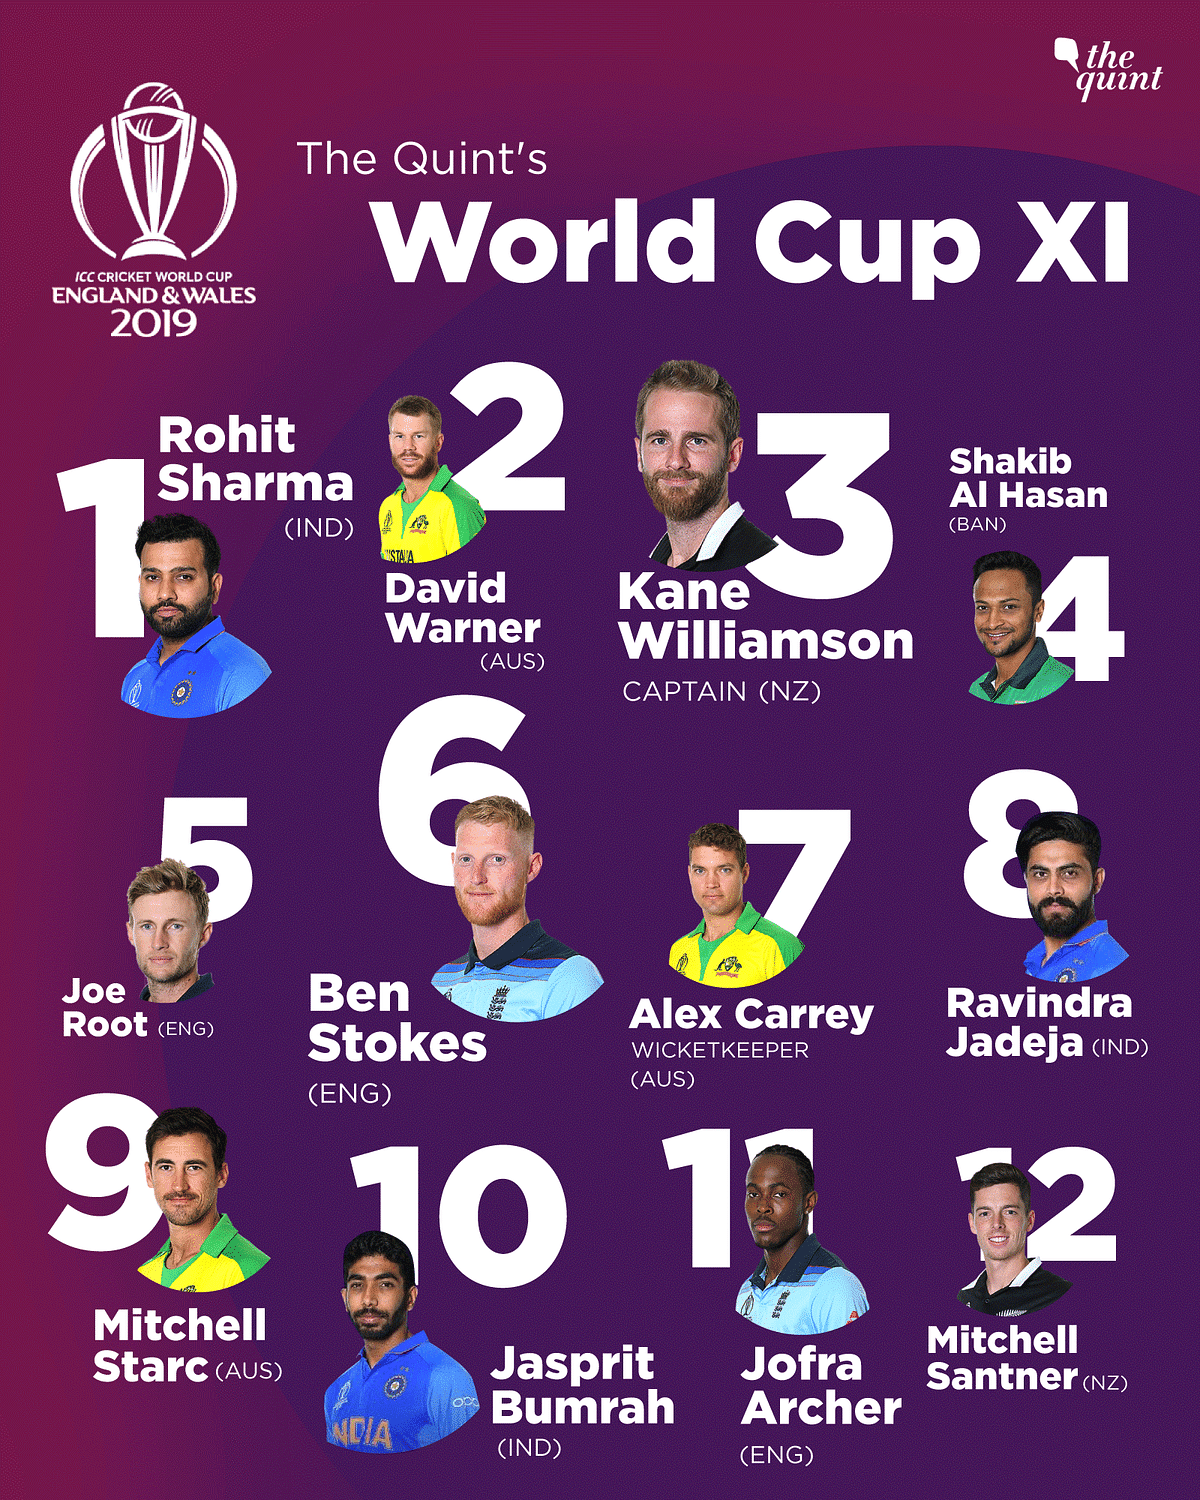 The Quint's WC XI: Williamson to Lead, Rohit & Bumrah Make the Cut